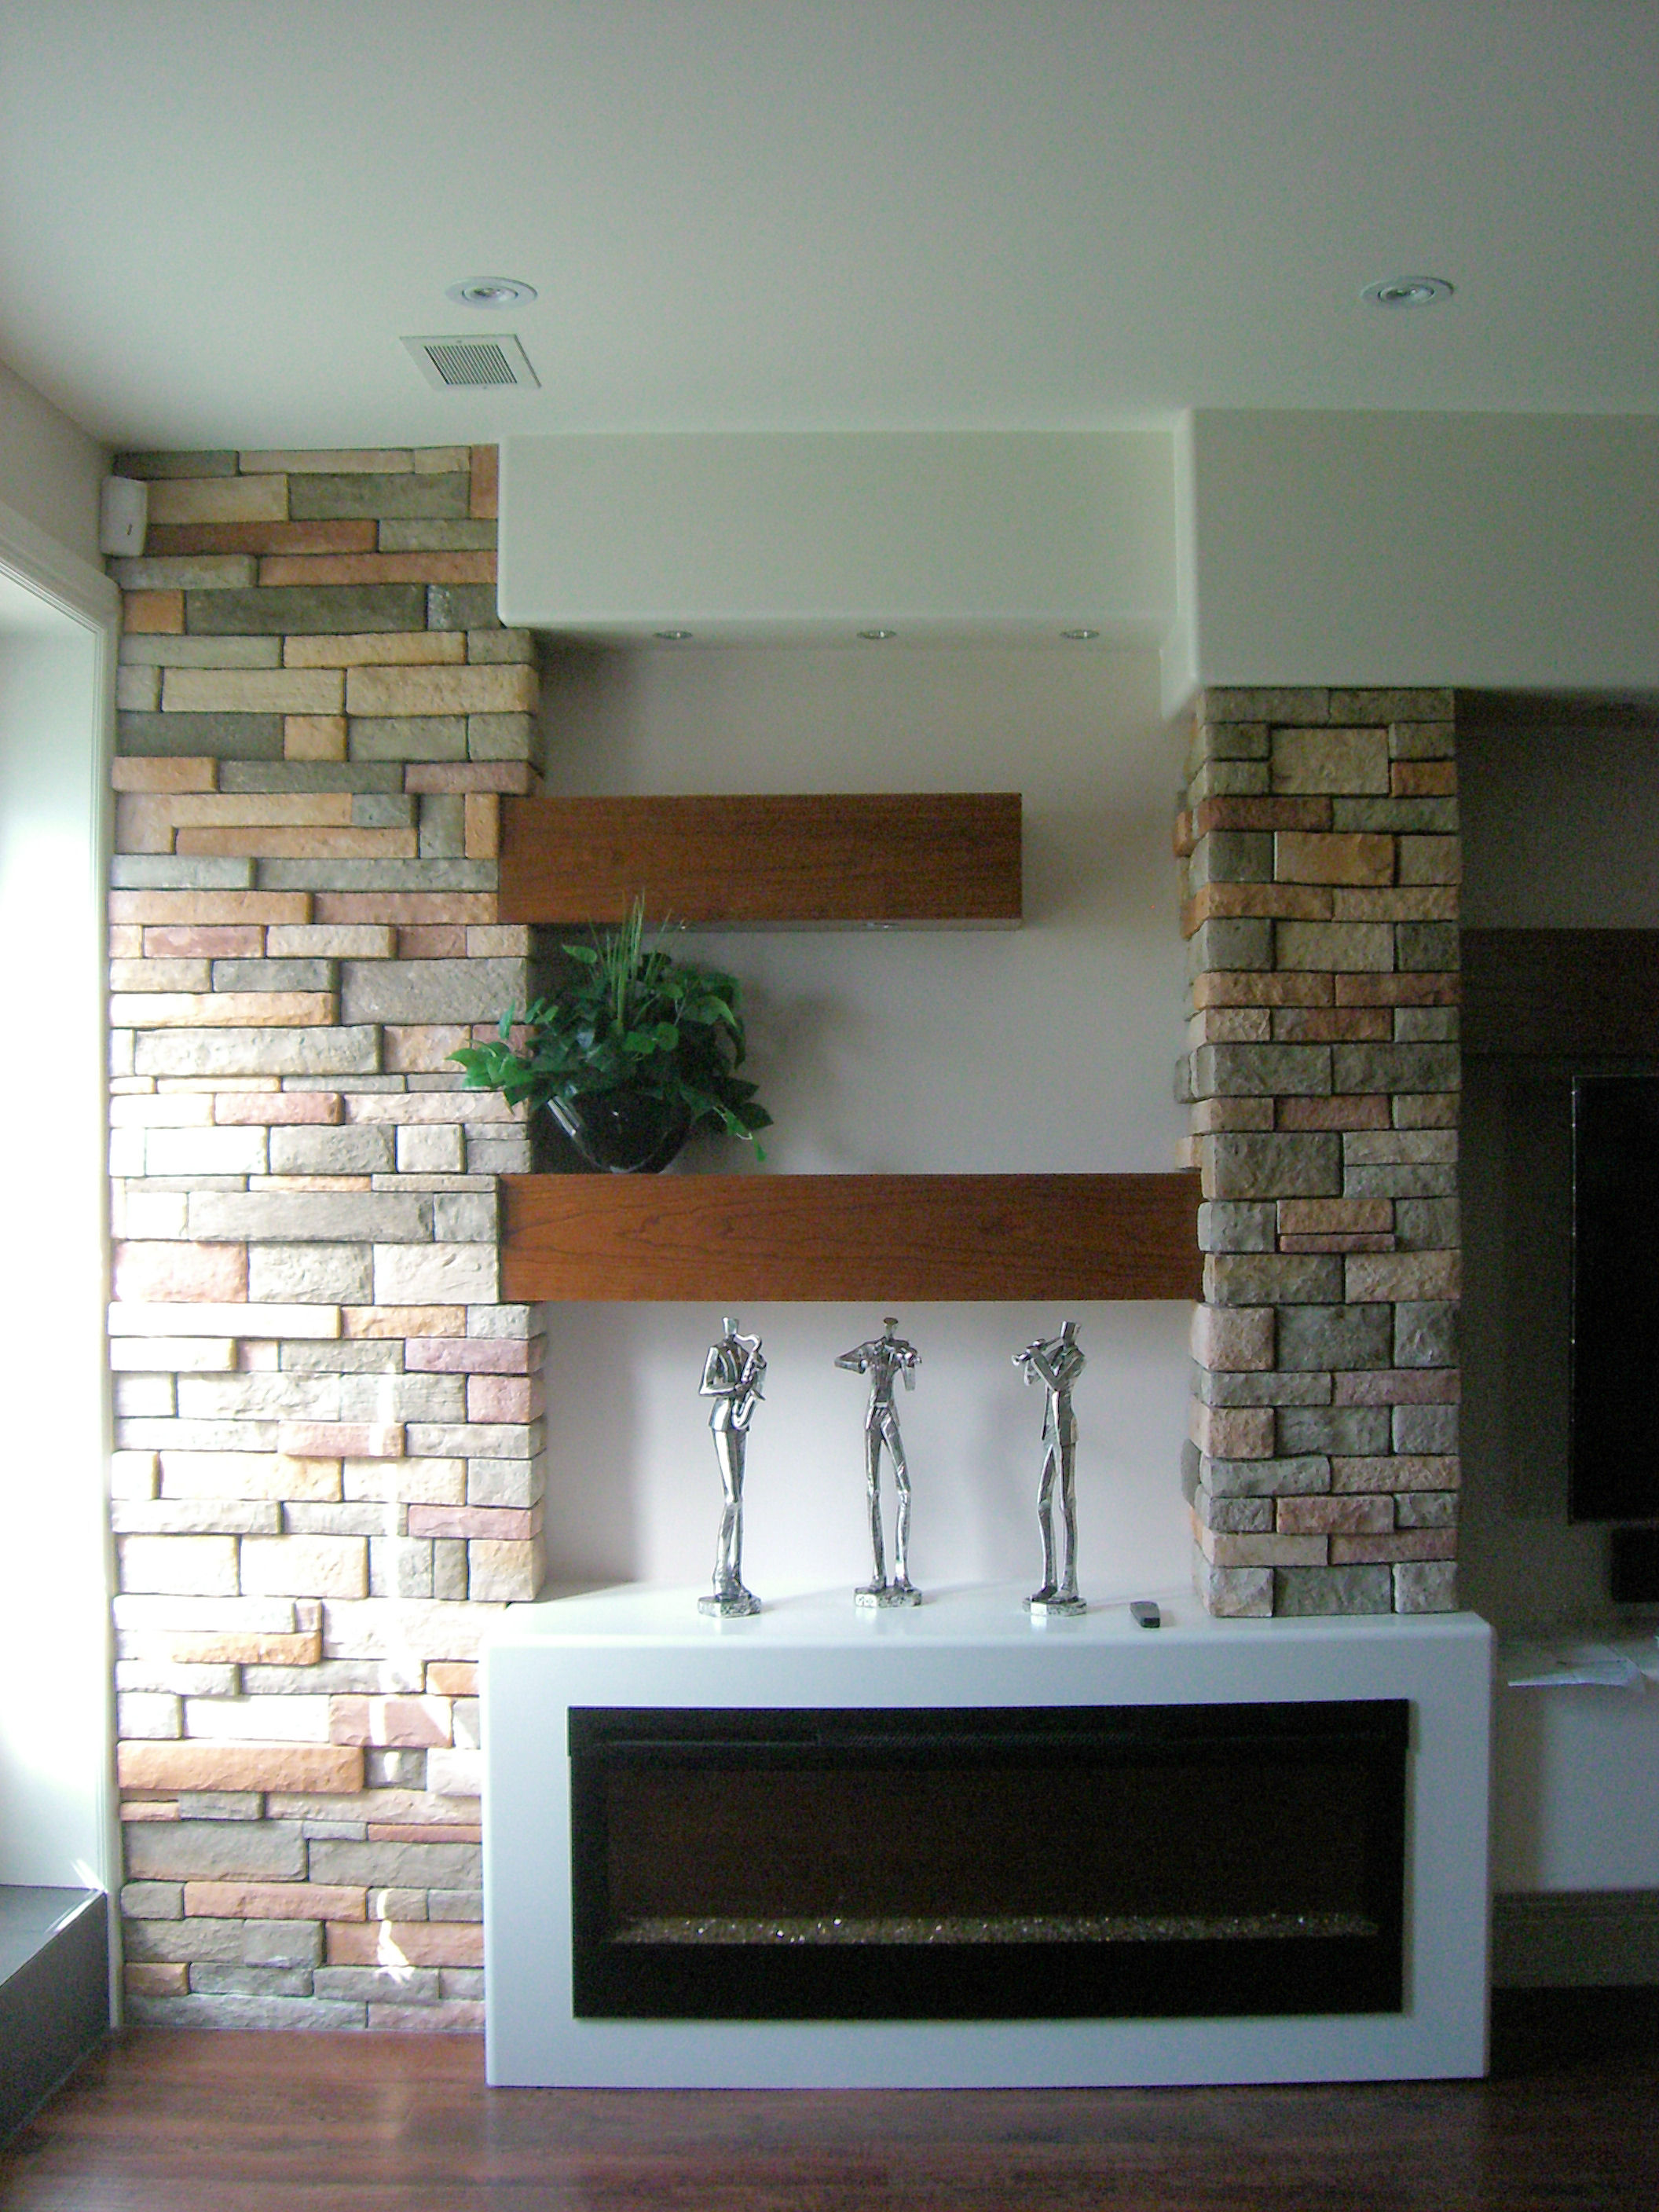 steel electric fireplace aifaresidency living fancy com mount also mounted well stainless of traveled wall